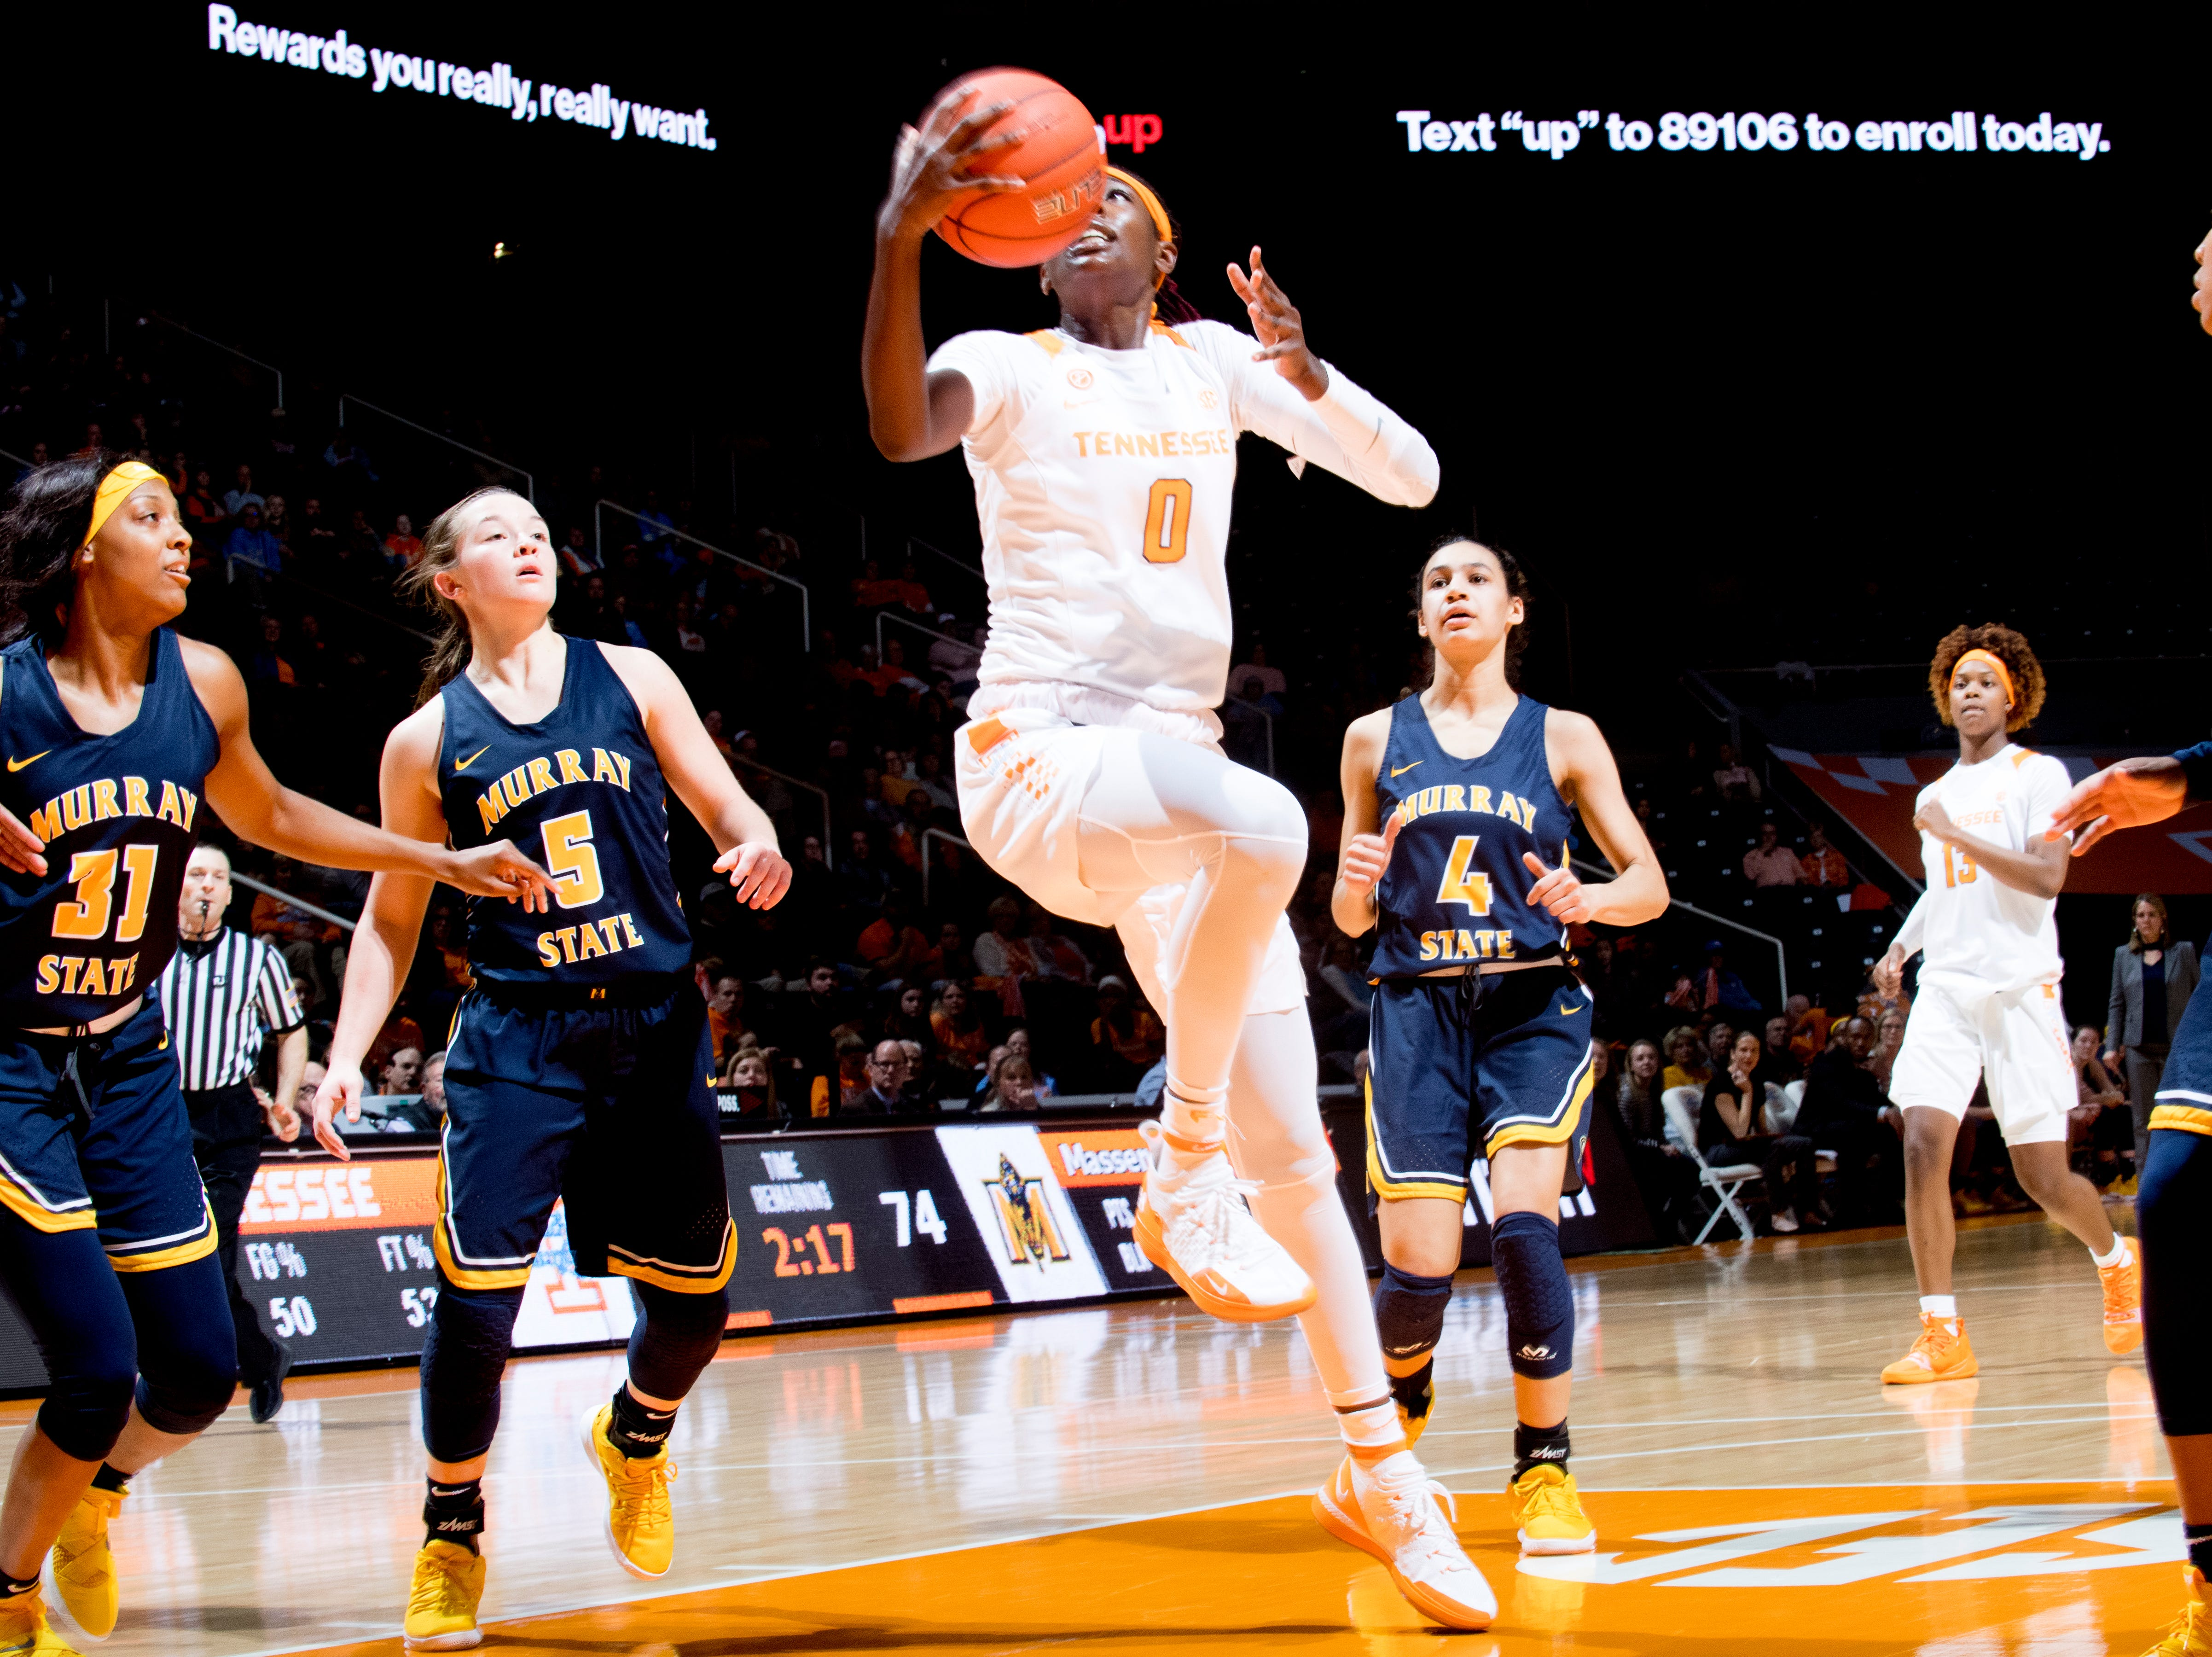 Tennessee guard/forward Rennia Davis (0) goes for a layup during a game between the Tennessee Lady Vols and Murray State at Thompson-Boling Arena in Knoxville, Tennessee on Friday, December 28, 2018.